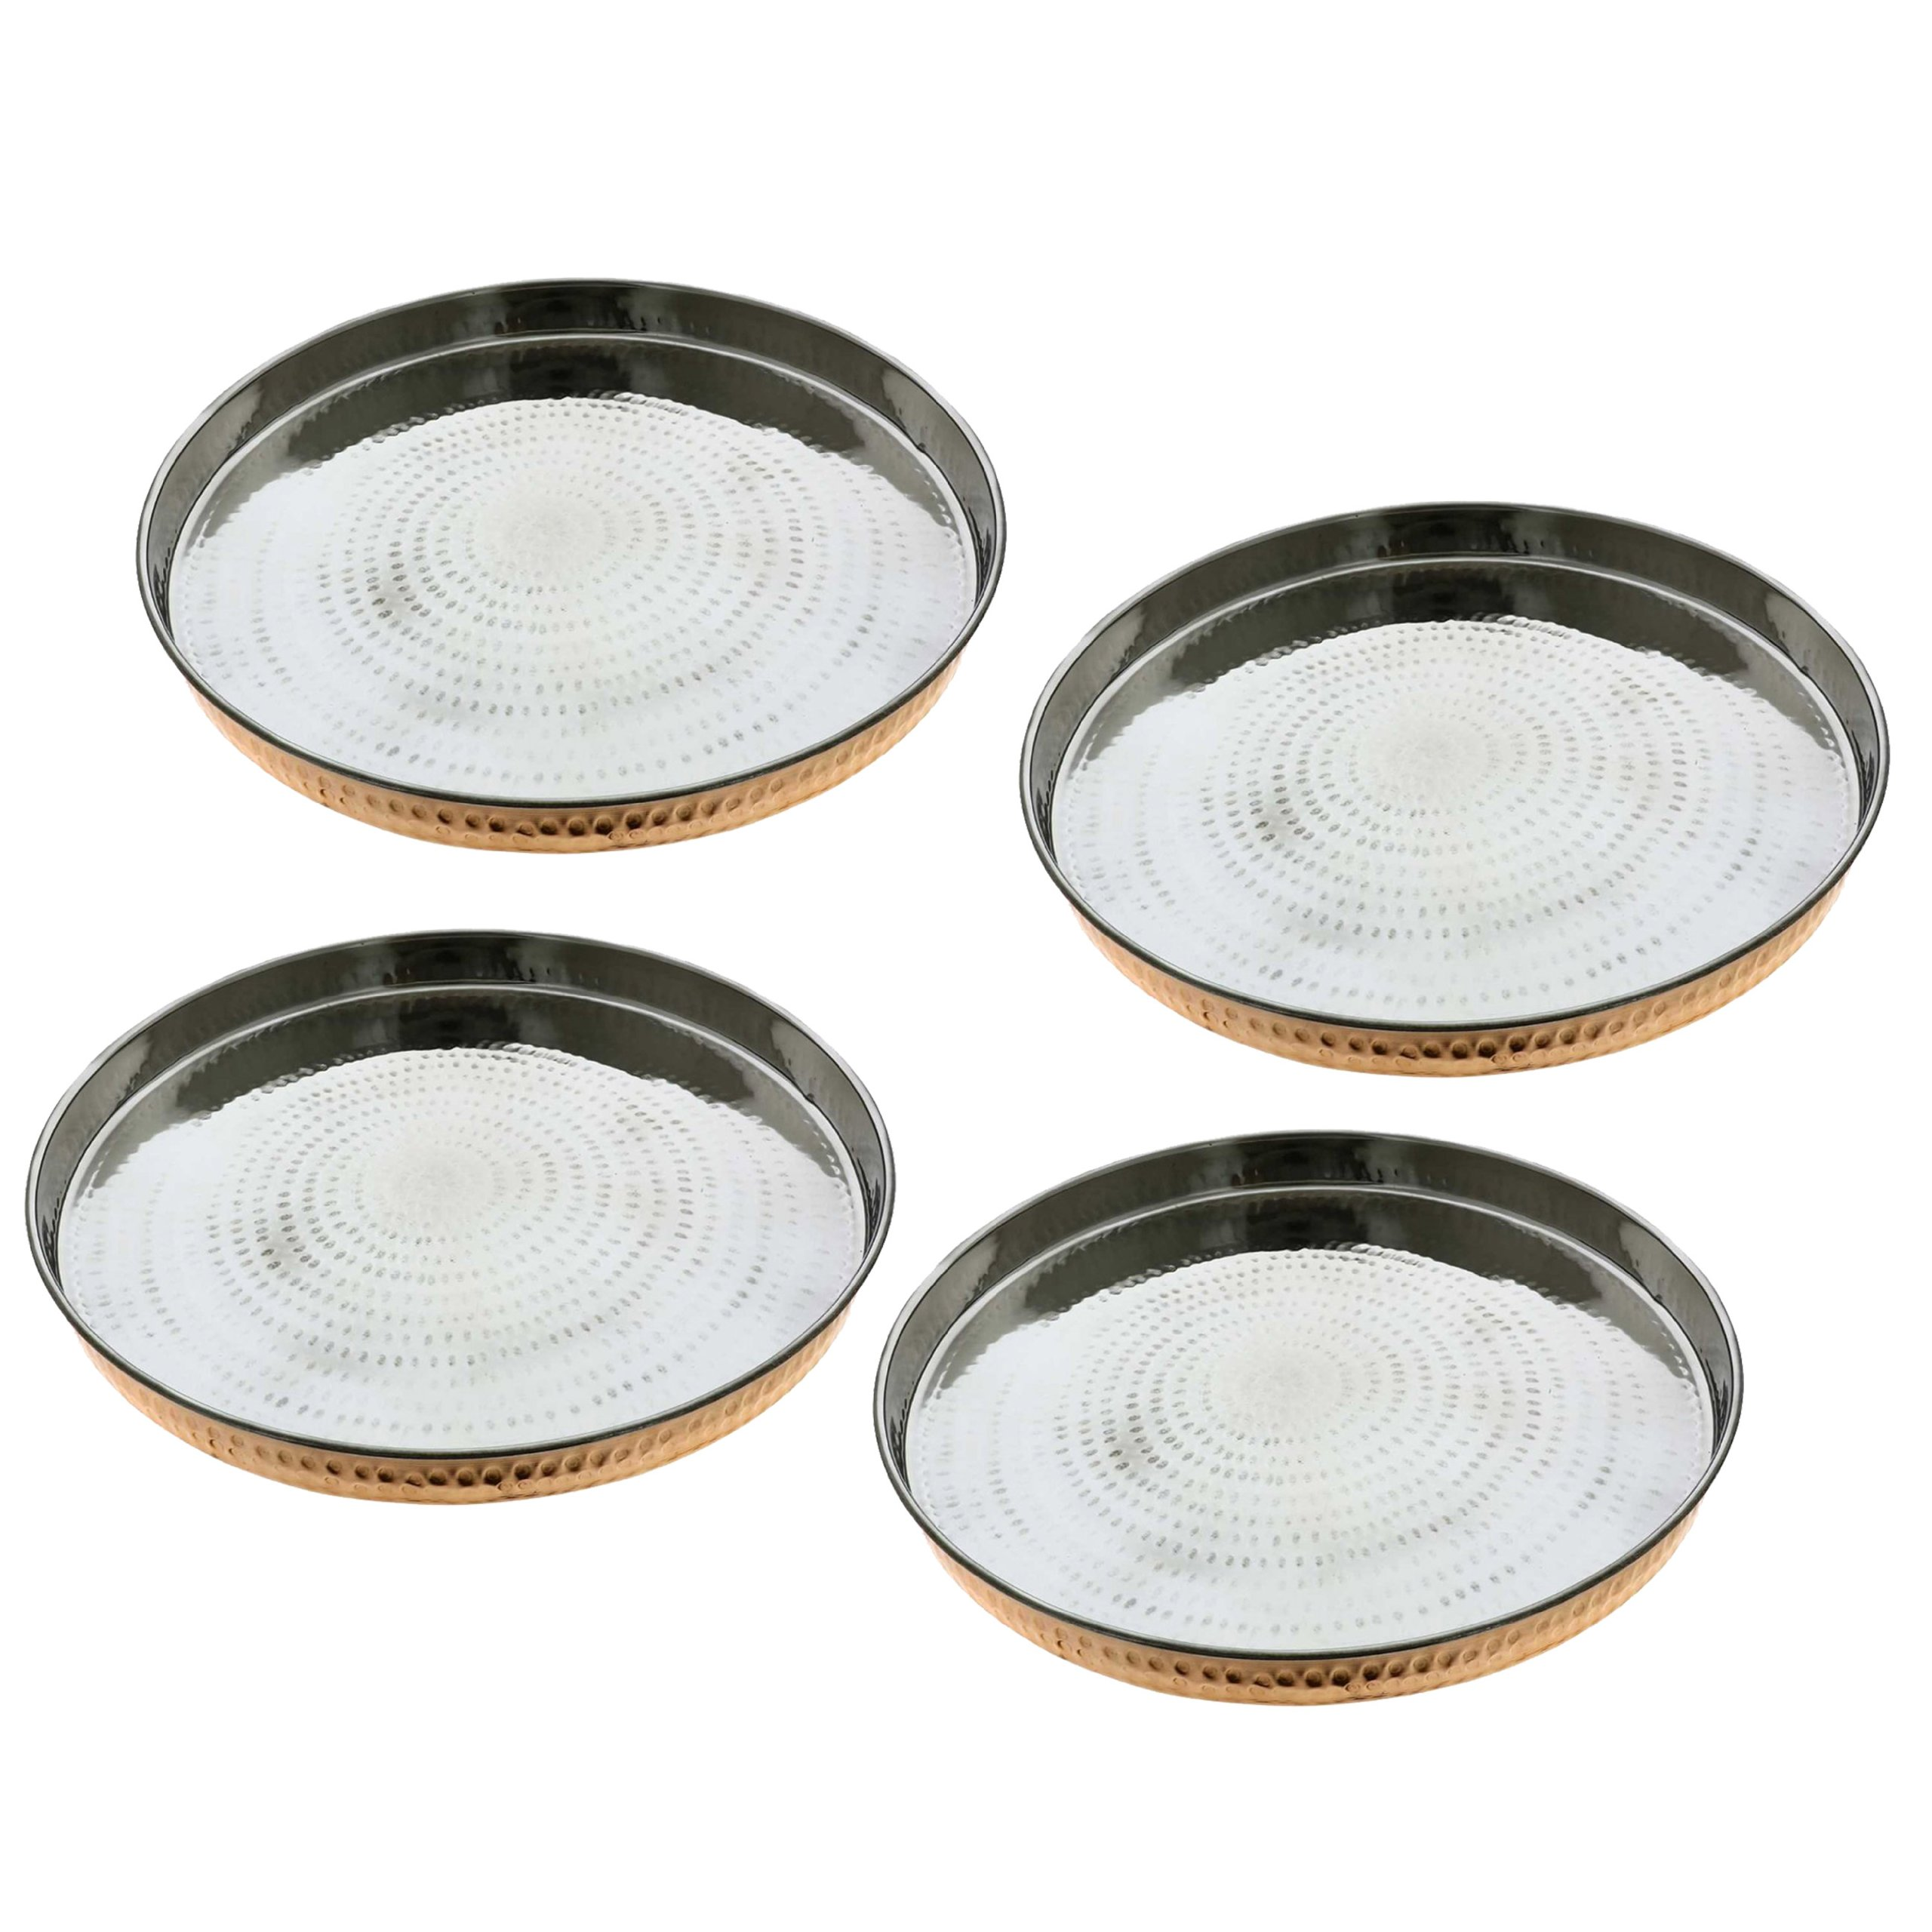 Set of 4, Dinnerware Accessories Copper Stainless Steel Large Dinner Plate Thali, Diameter 12 Inches